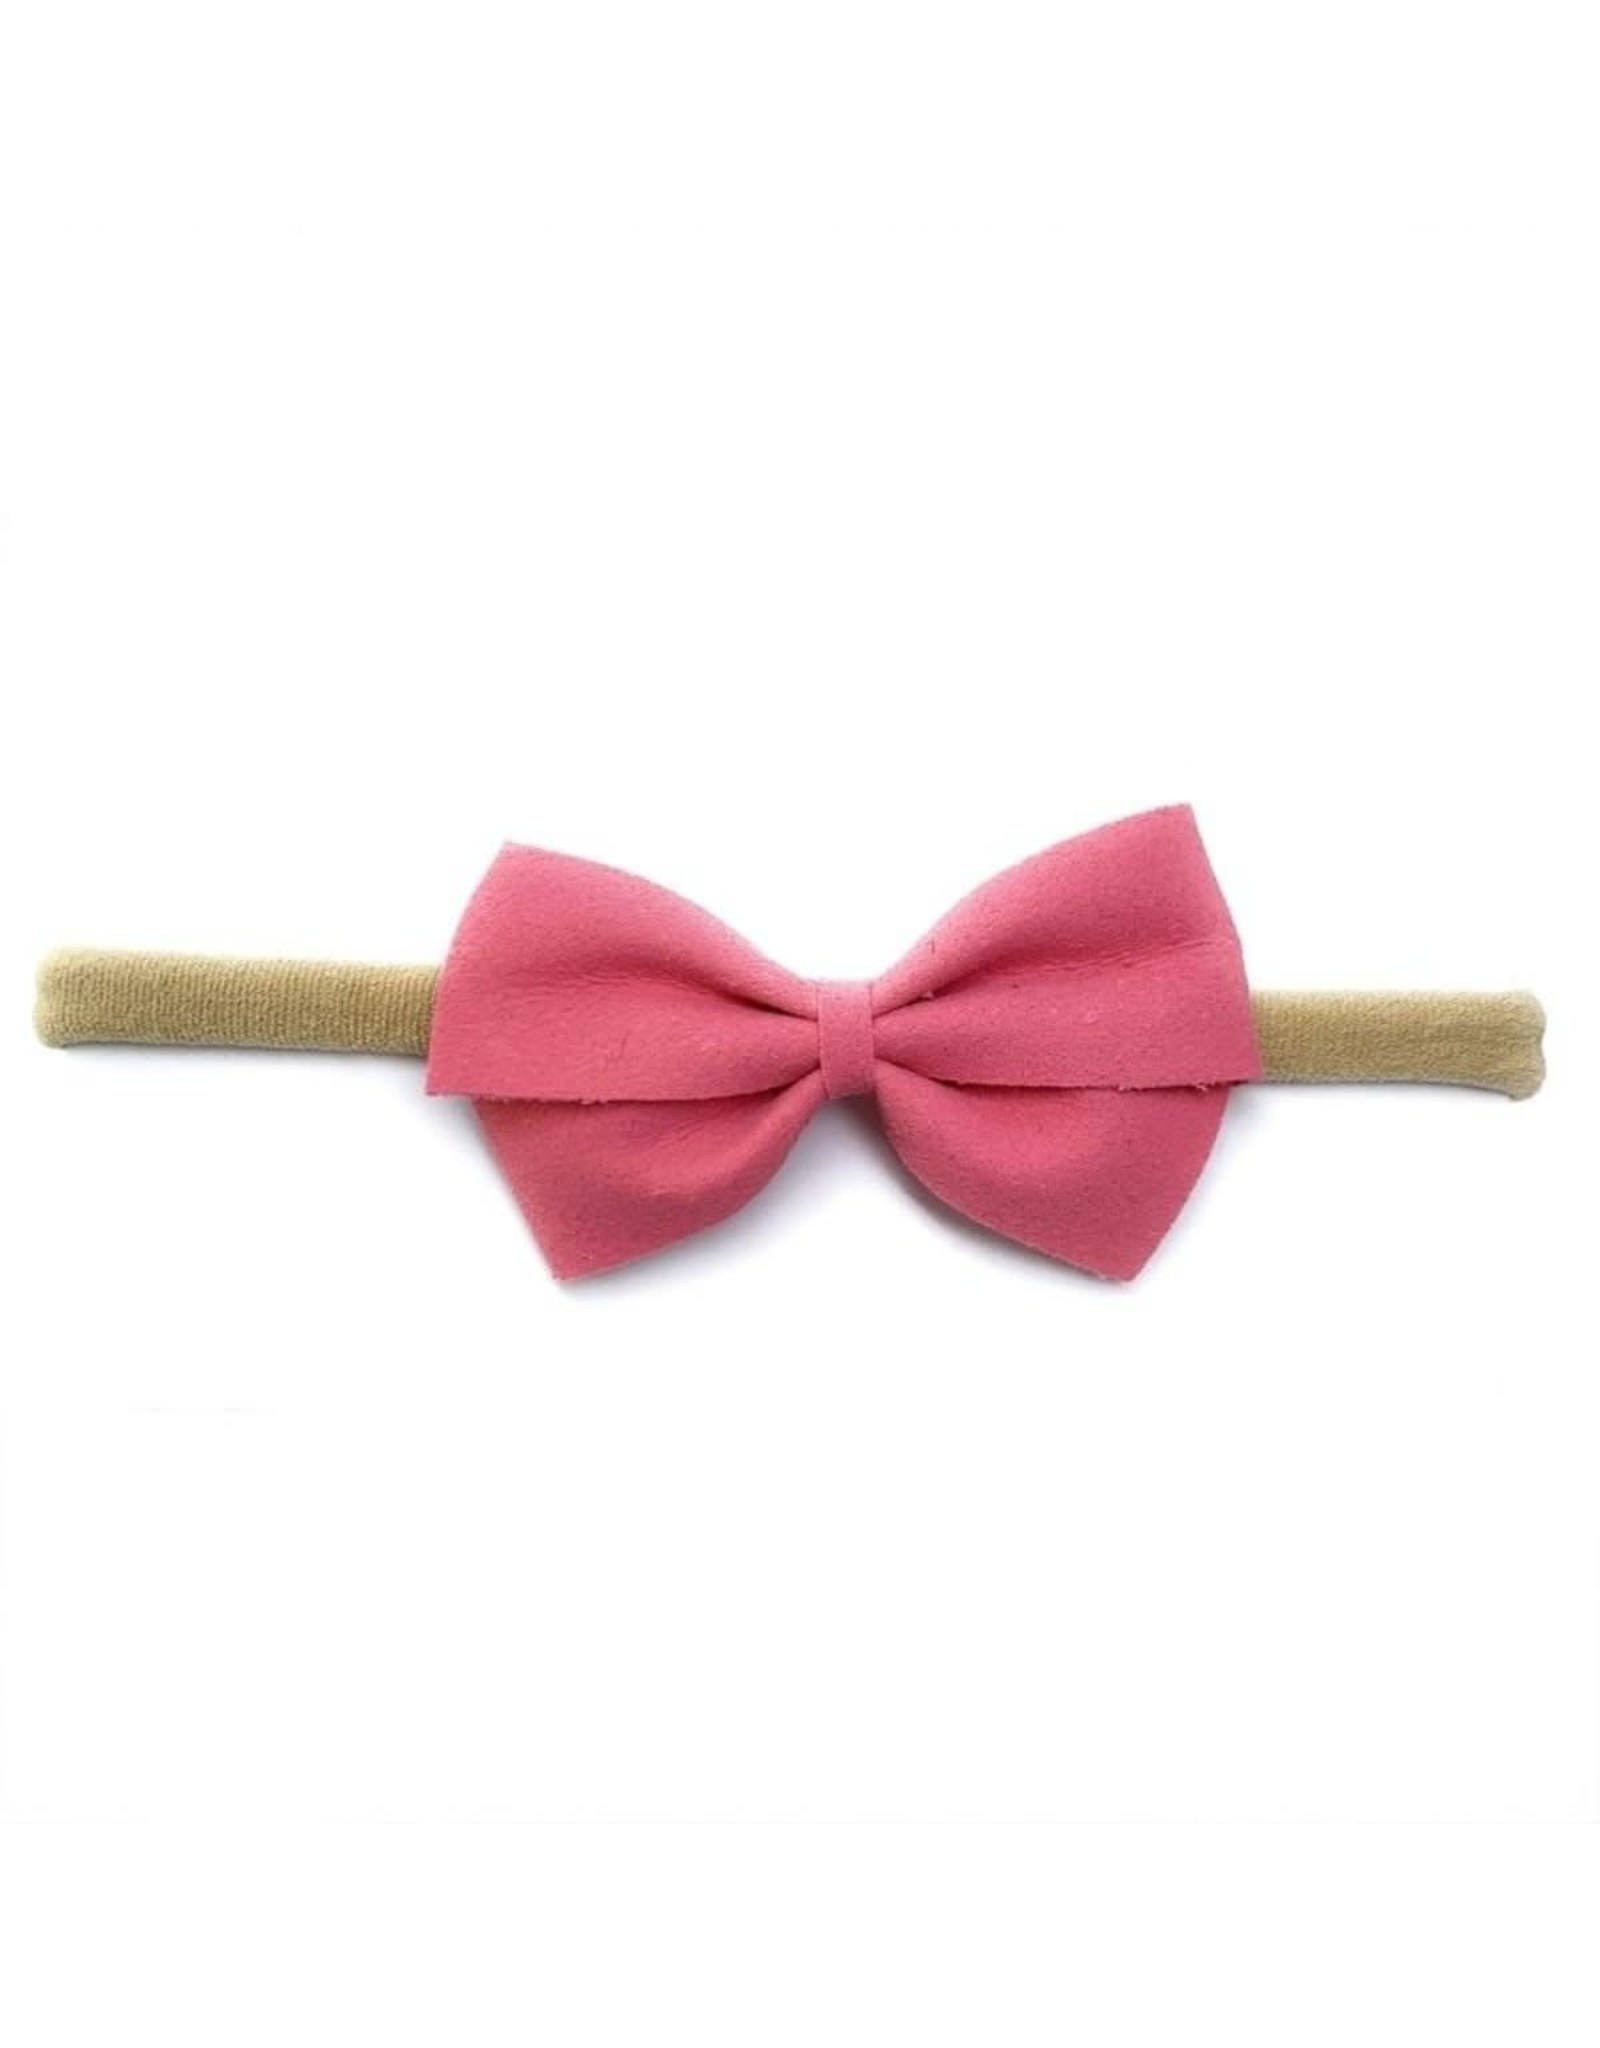 Baby Wisp Baby Wisp Thali Faux Suede Bow Headband, Candy Pink